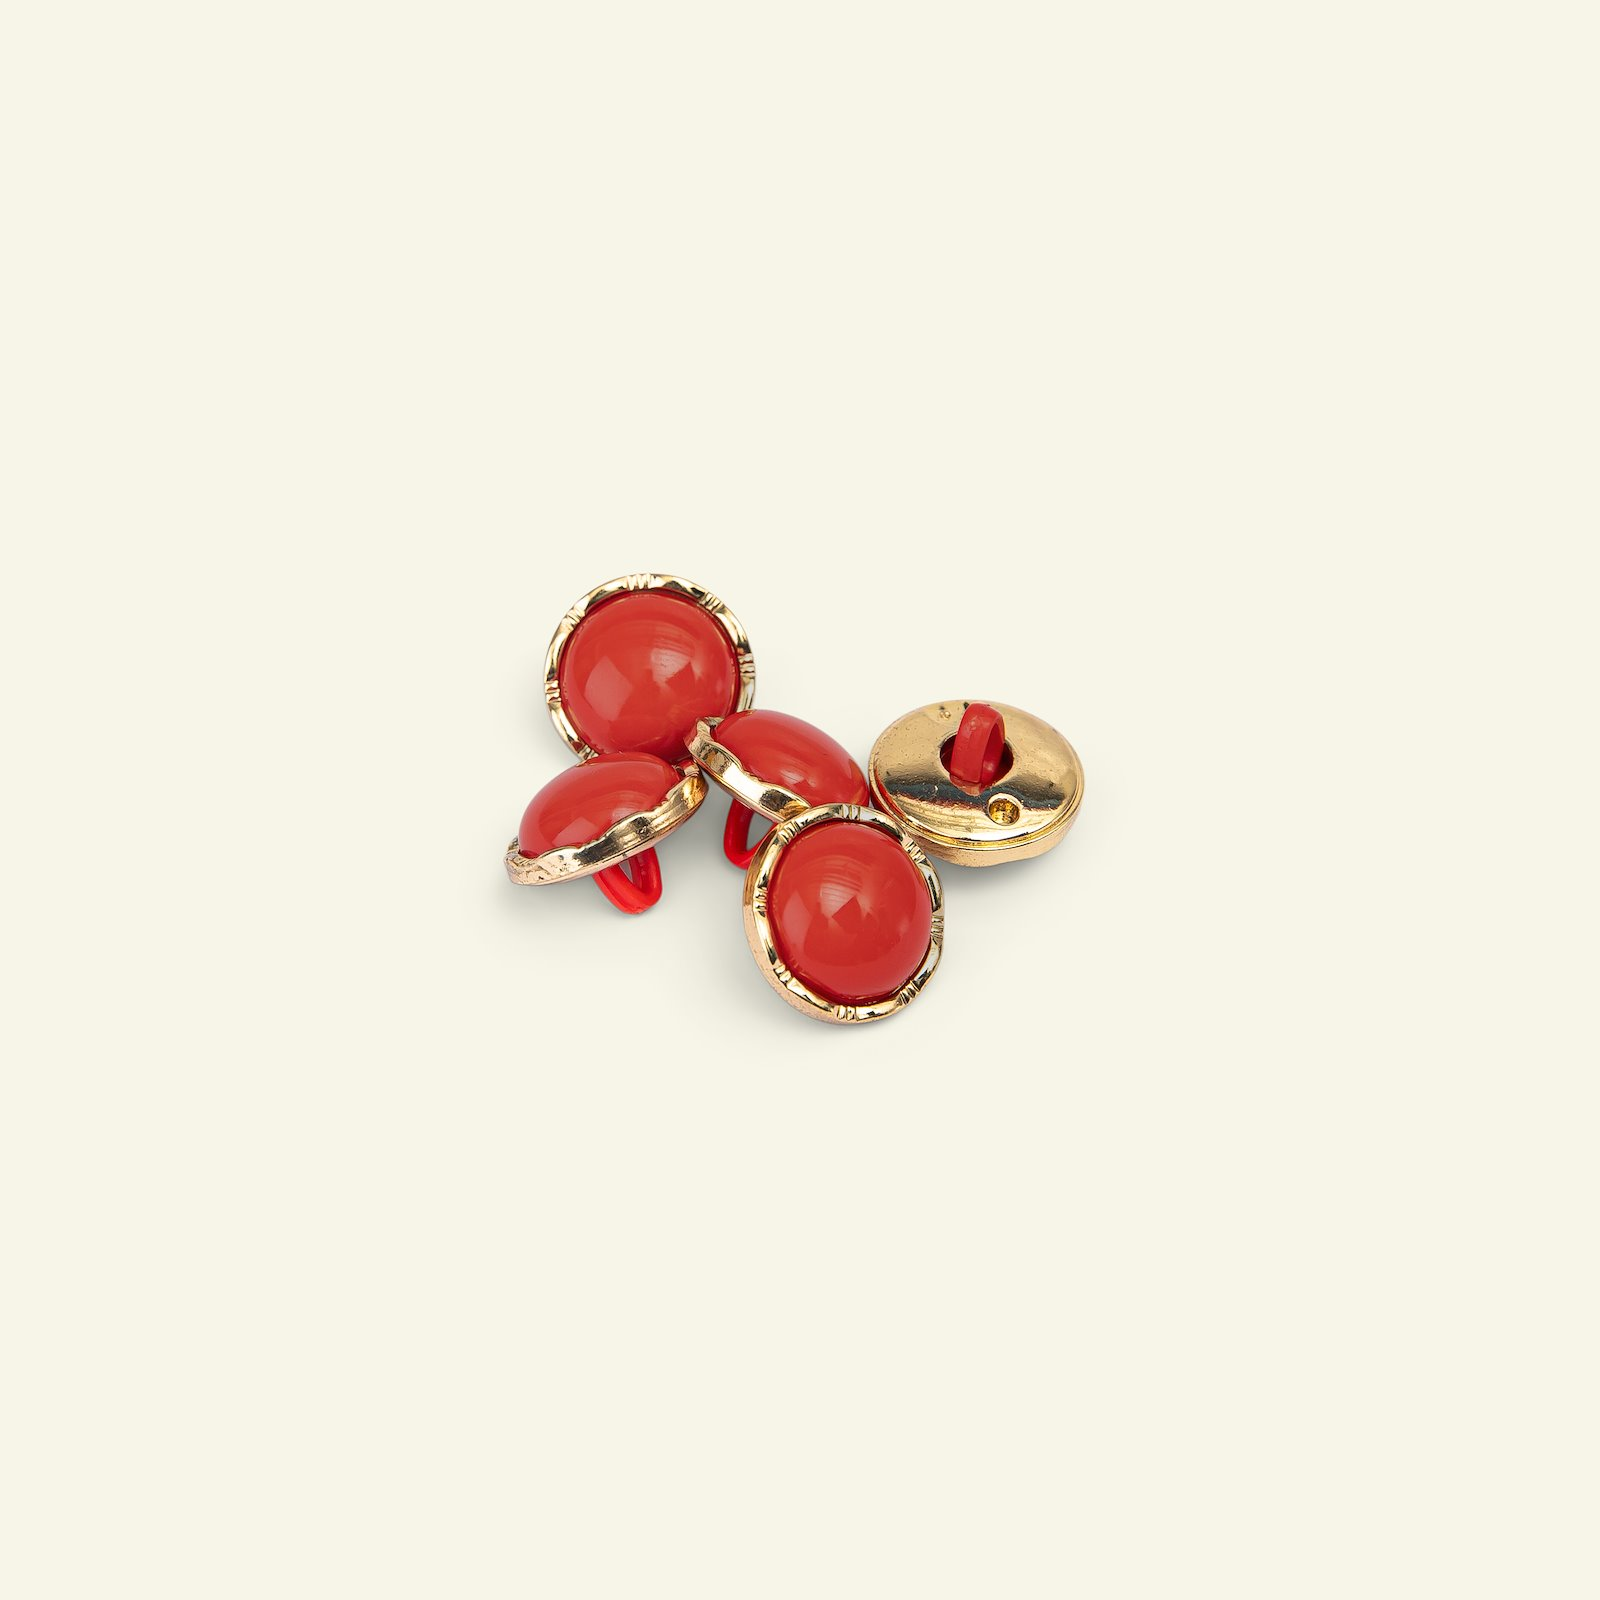 Shank button gold rim 15mm red 5pcs 33365_pack